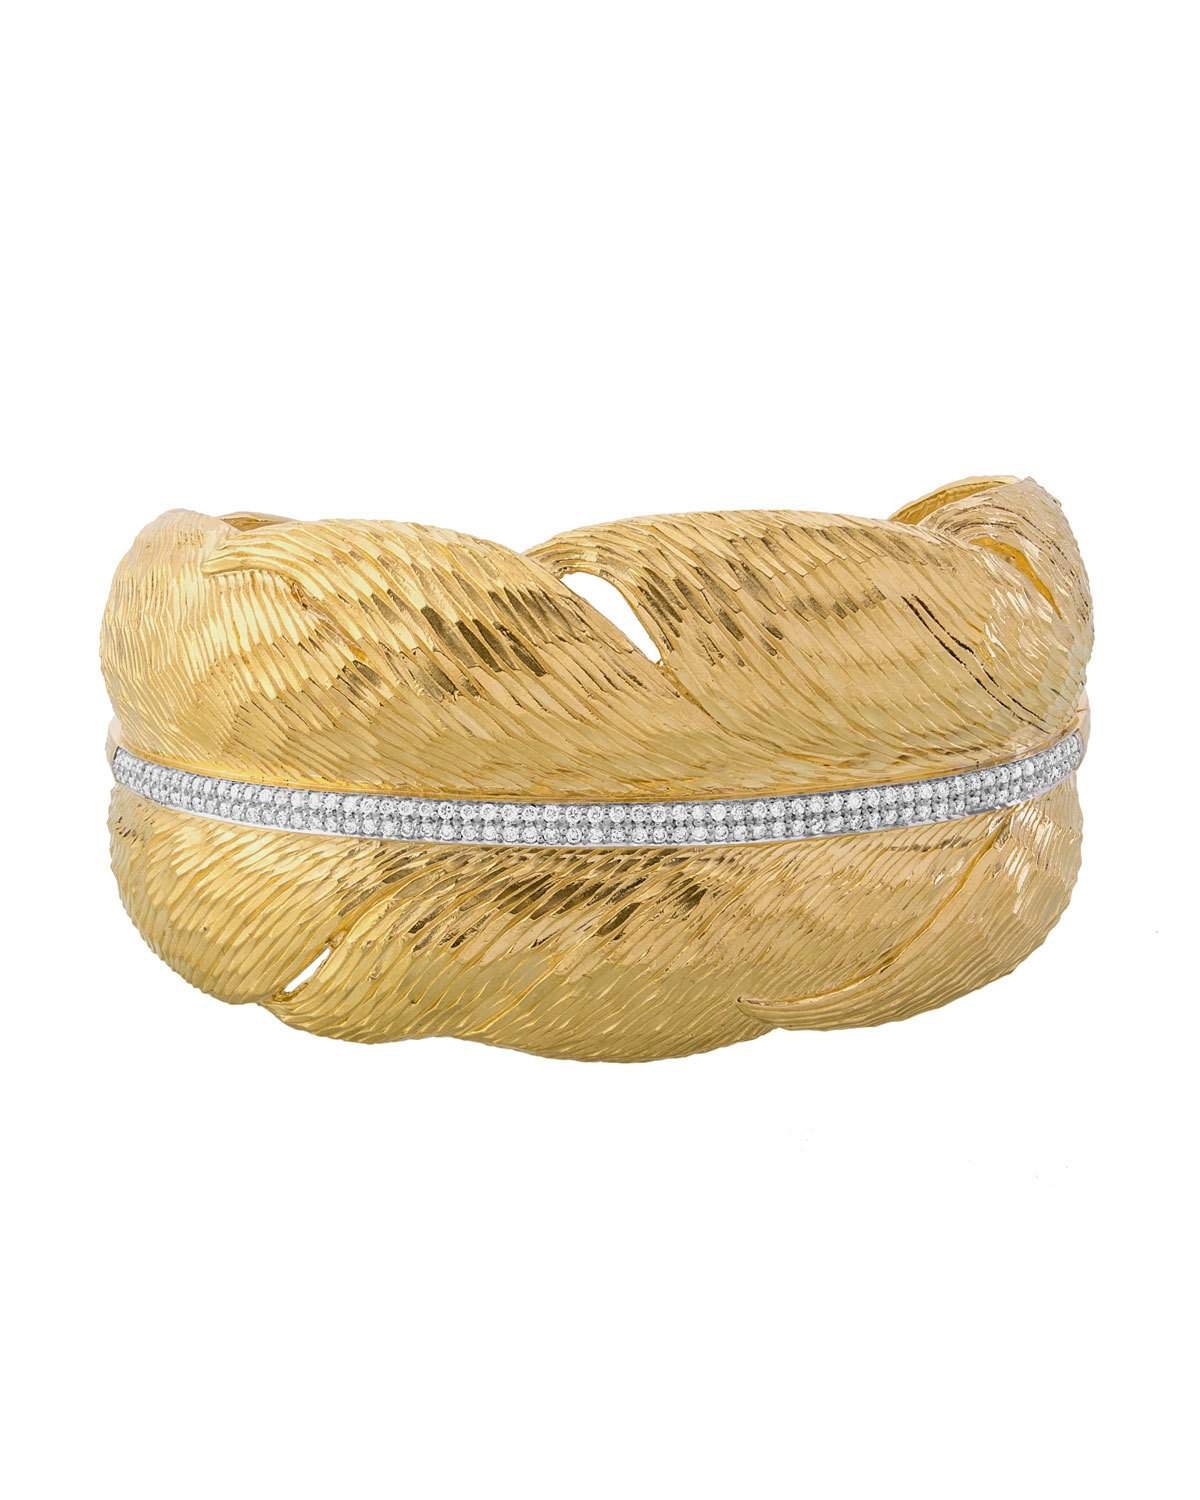 Michael Aram 18k Gold Diamond Feather Cuff Bracelet